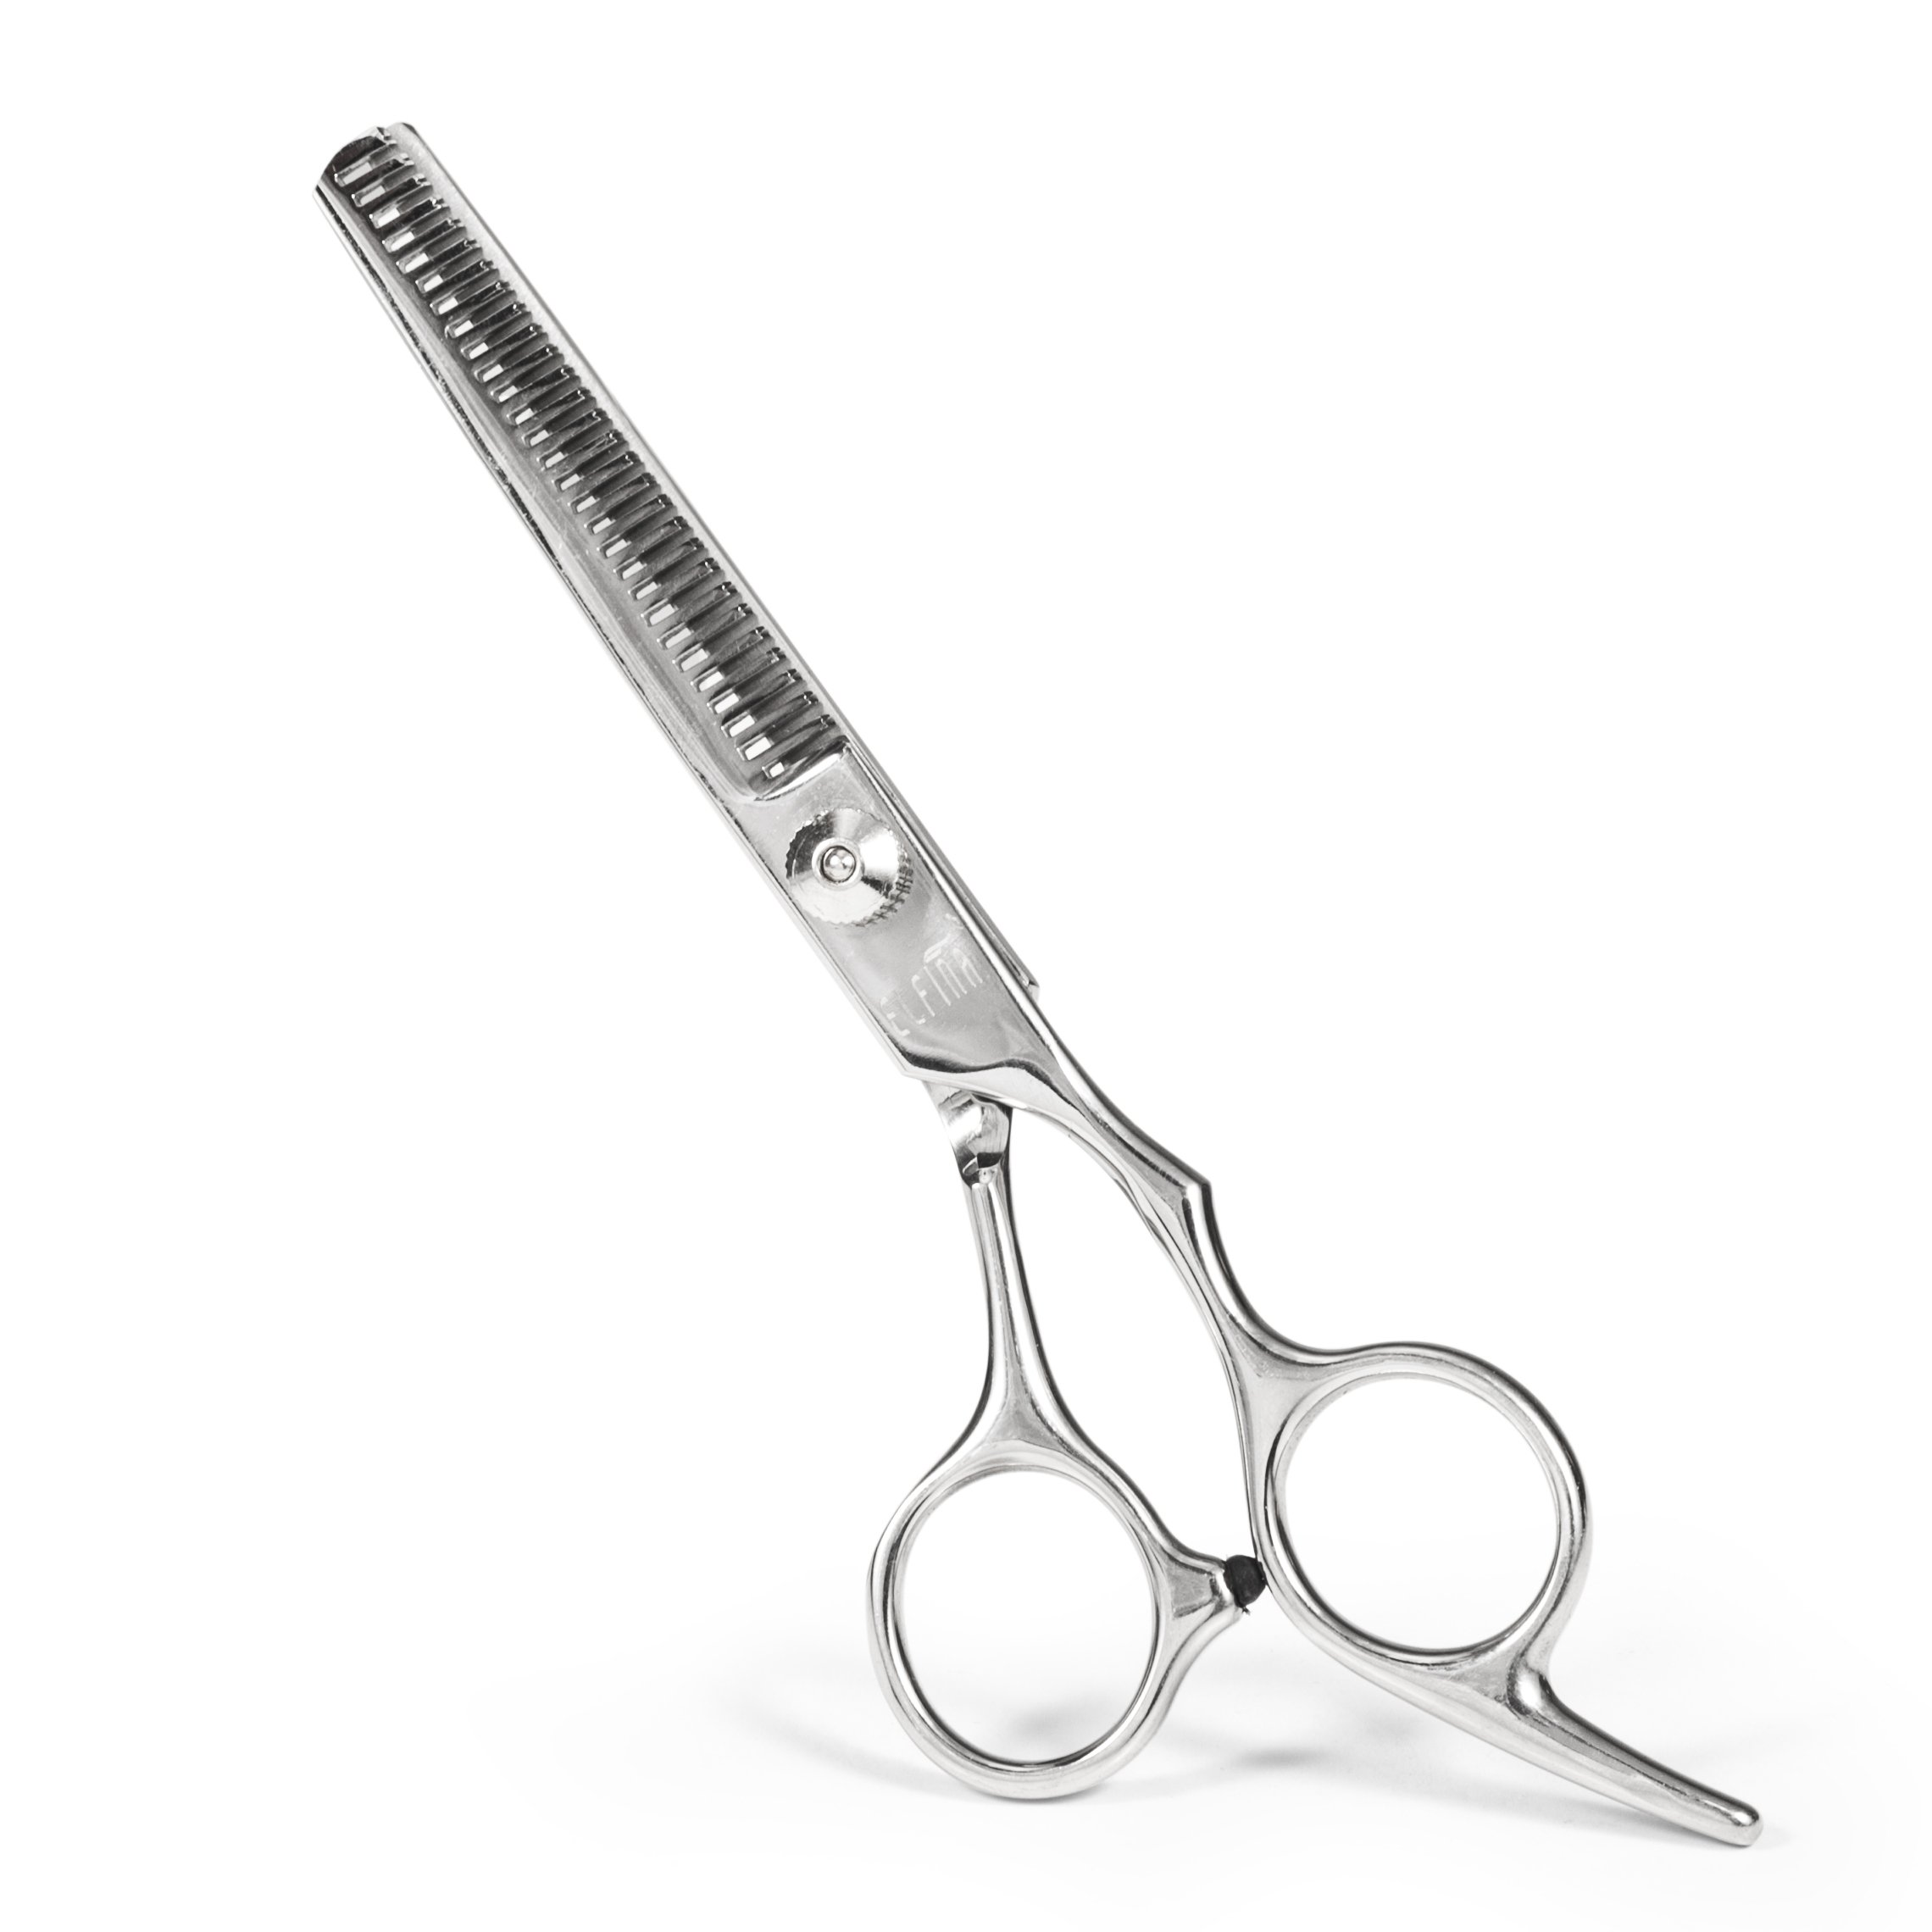 ELFINA Professional Hair Scissors Barber Hair Cutting Scissors Teeth Thinning/Texturing Hair Scissors Shears by ELFINA